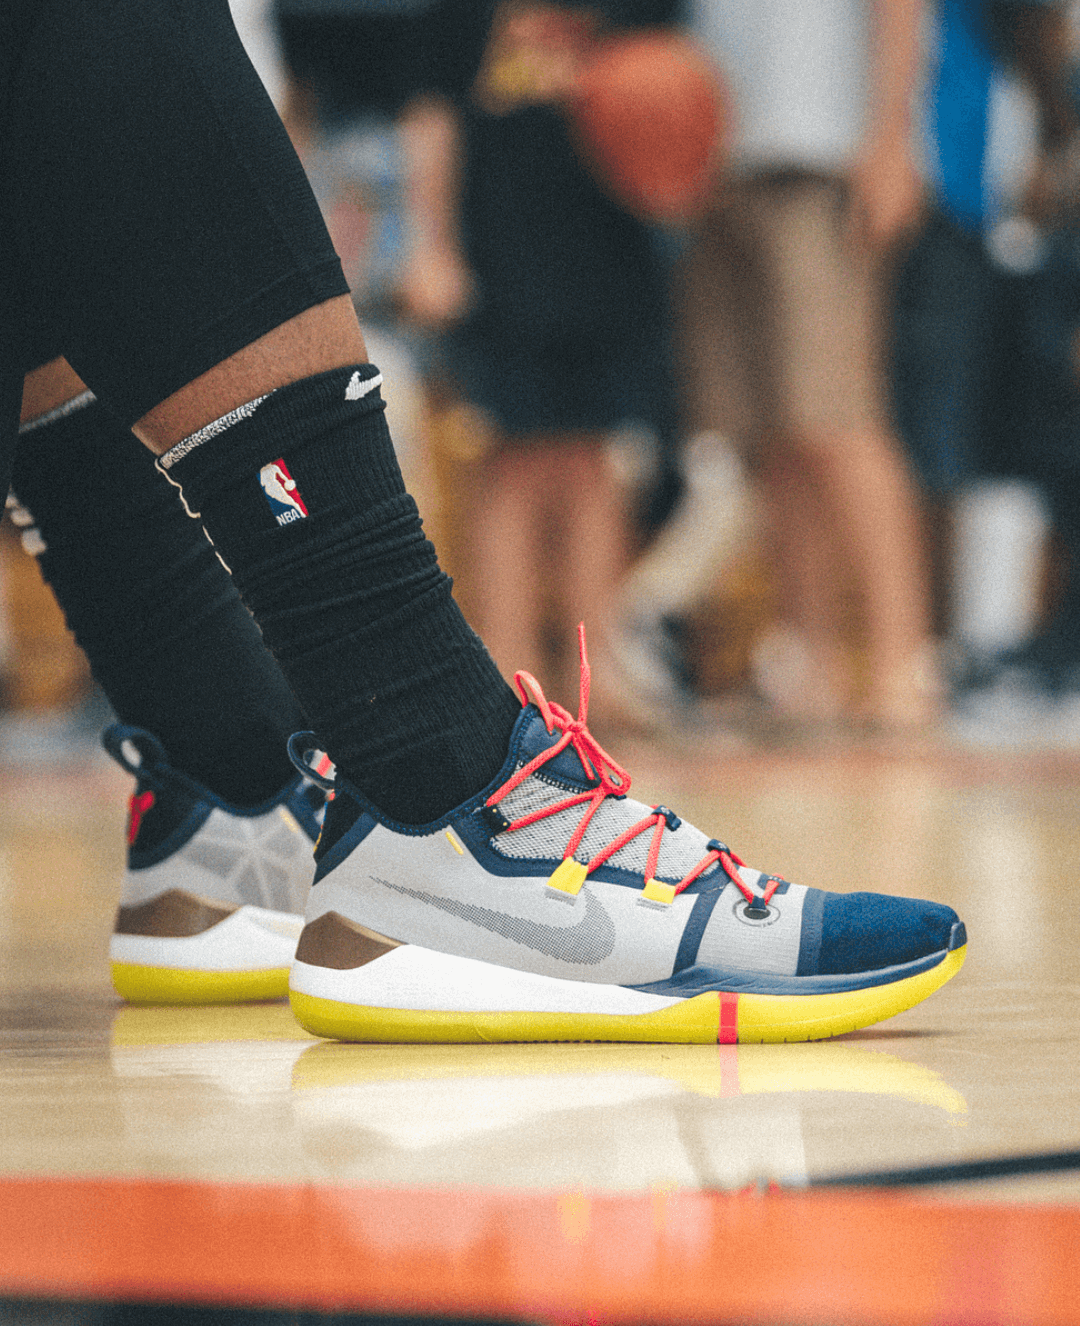 b2e640ccf NBA superstar DeMar DeRozan is a huge fan of Kobe sneakers. The Nike  athelete serves as the active face of the Kobe signature line after the man  himself ...